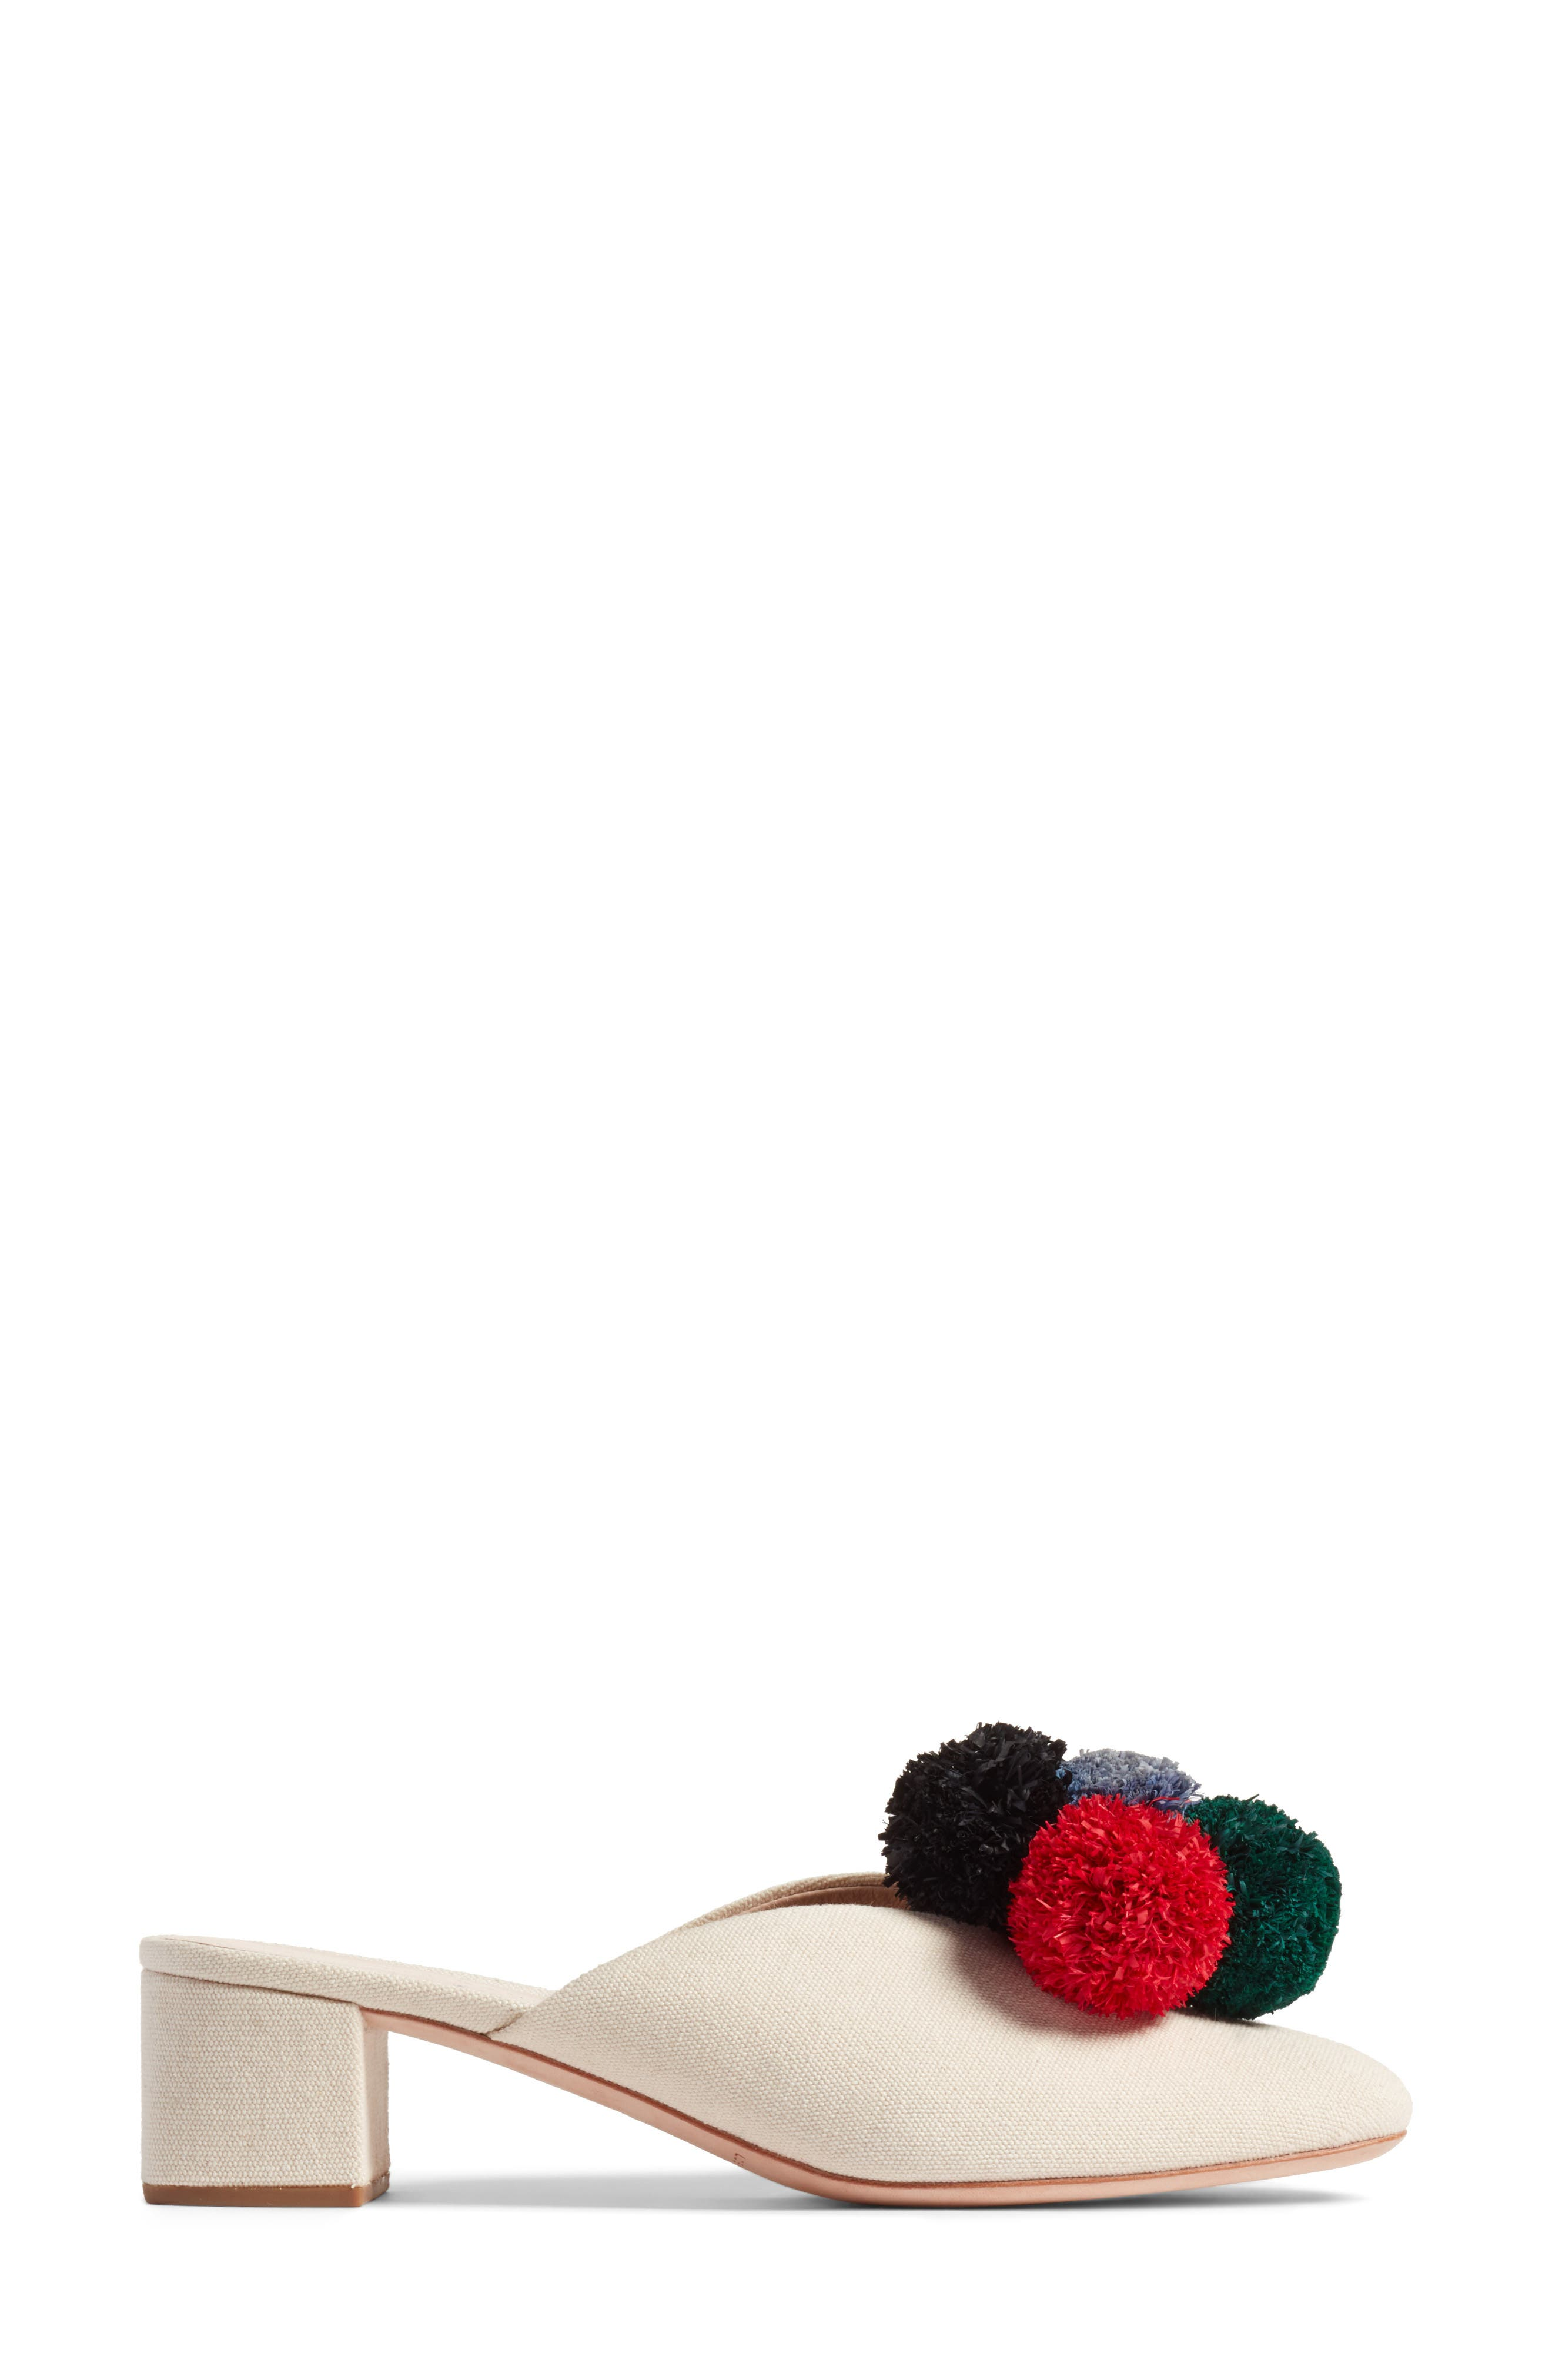 Lulu Pom Block Heel Mule,                             Alternate thumbnail 3, color,                             Natural/ Multi